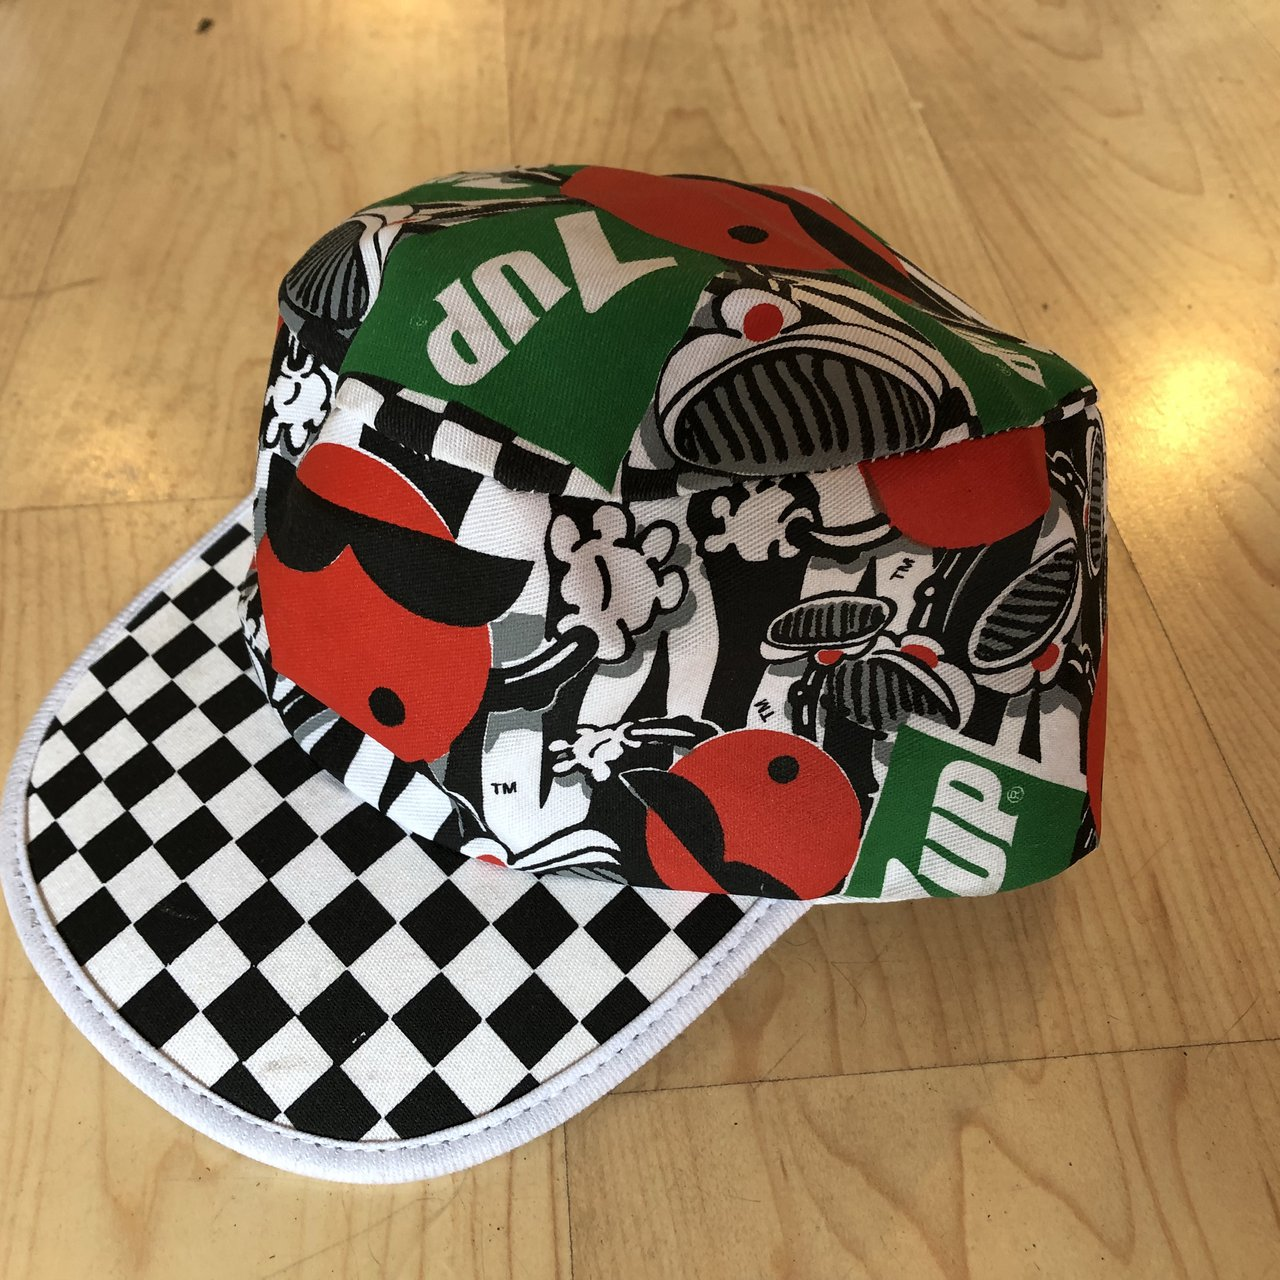 Vintage 80s 7-Up Painters Hat. Practically Brand new. Great - Depop ae4467785ba